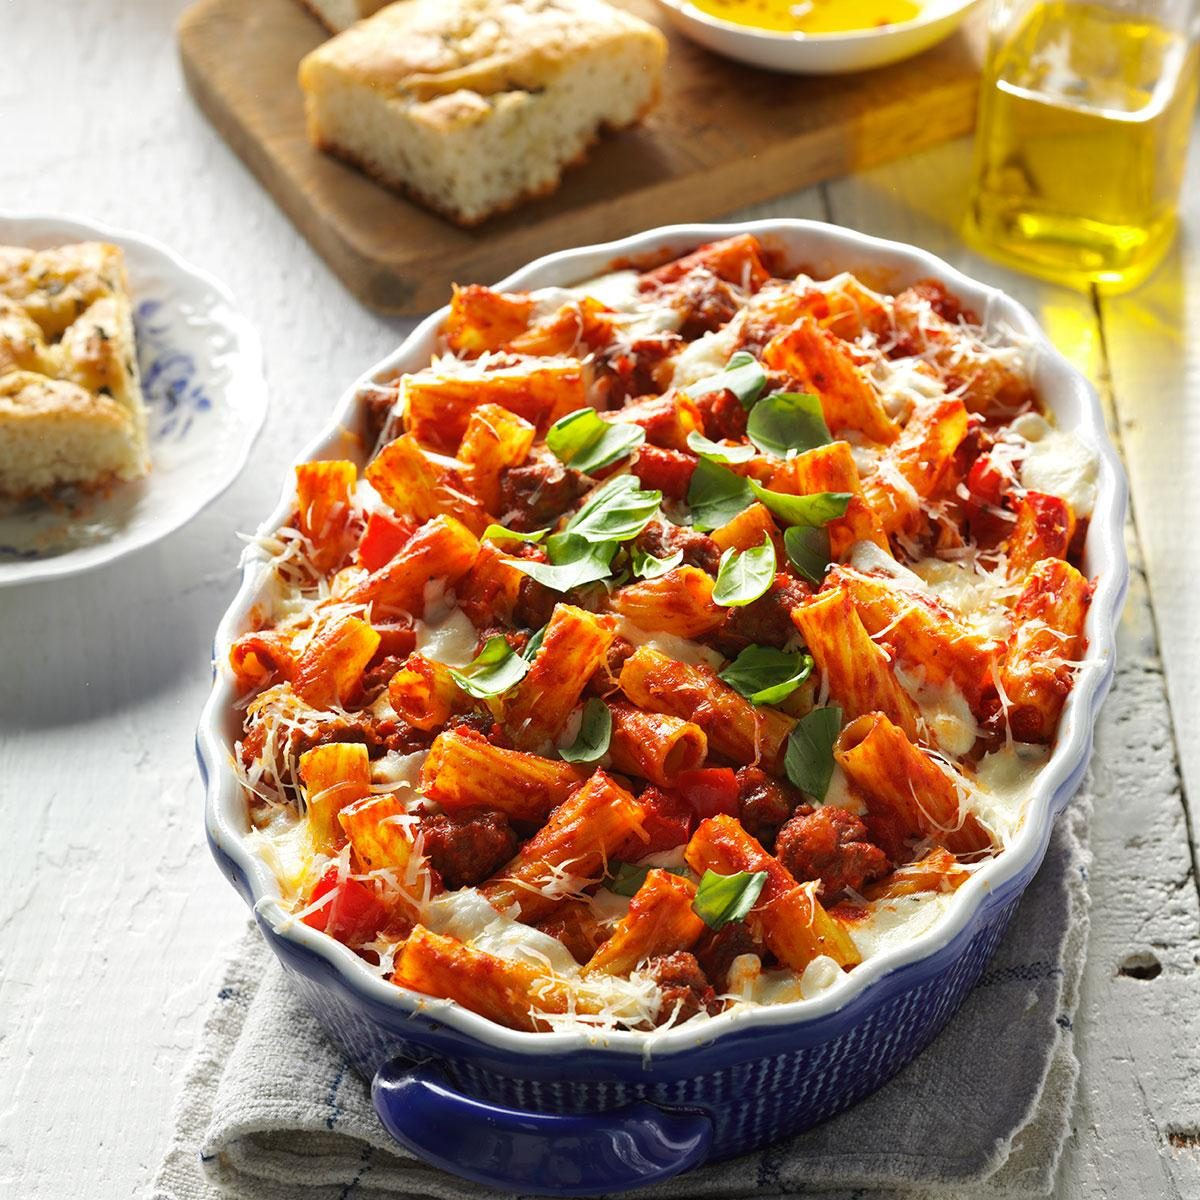 Good Dinner Recipes For 4: Four-Cheese Sausage Rigatoni Recipe